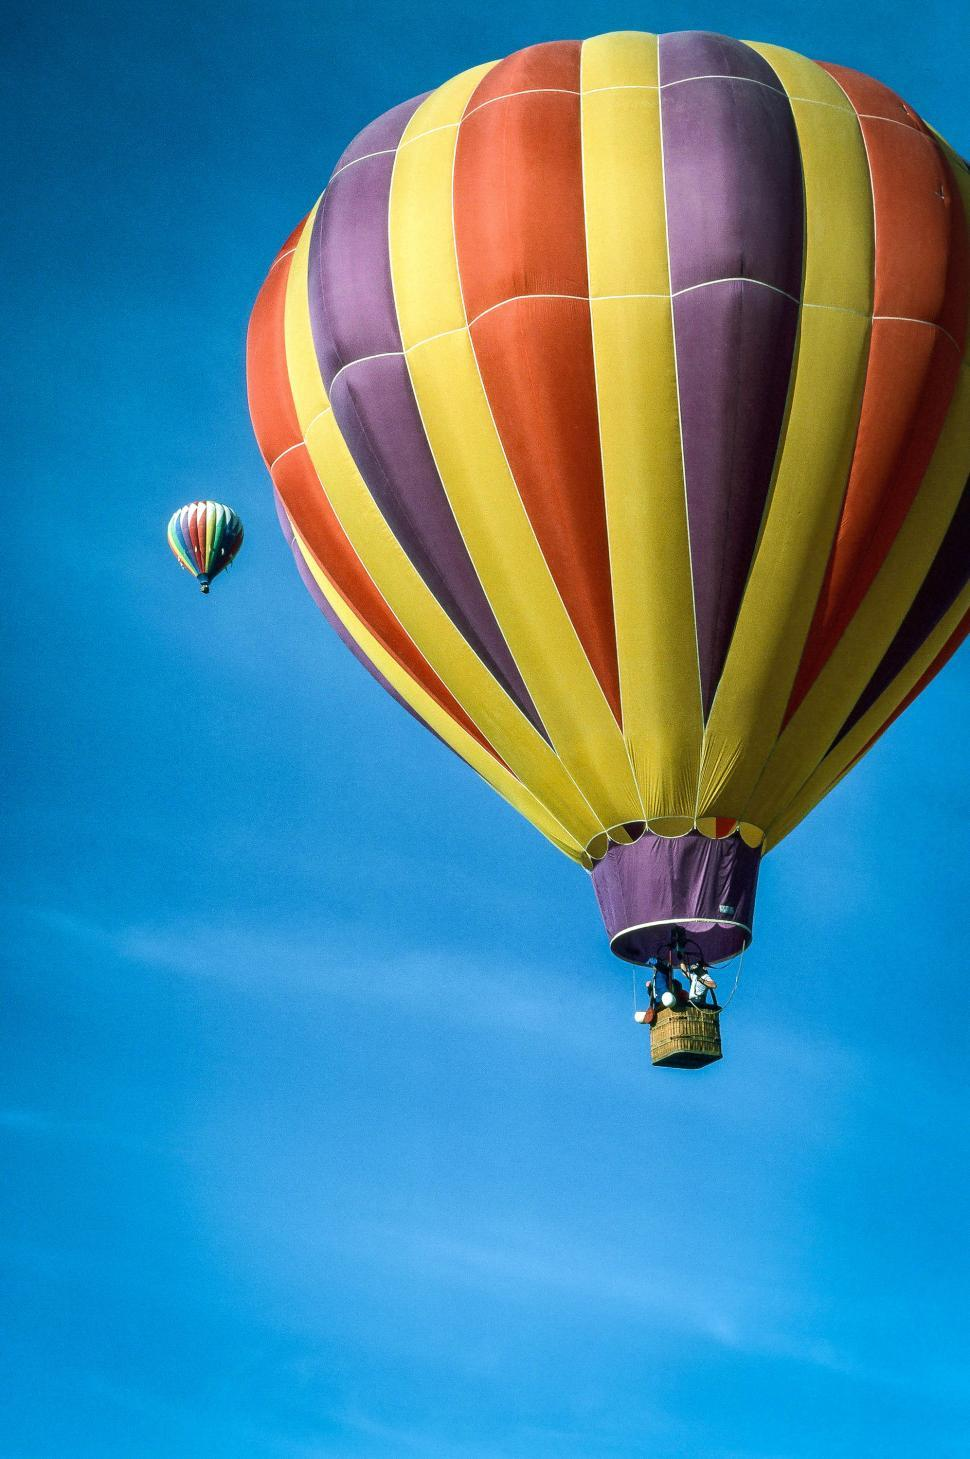 Download Free Stock Photo of Hot-air balloons